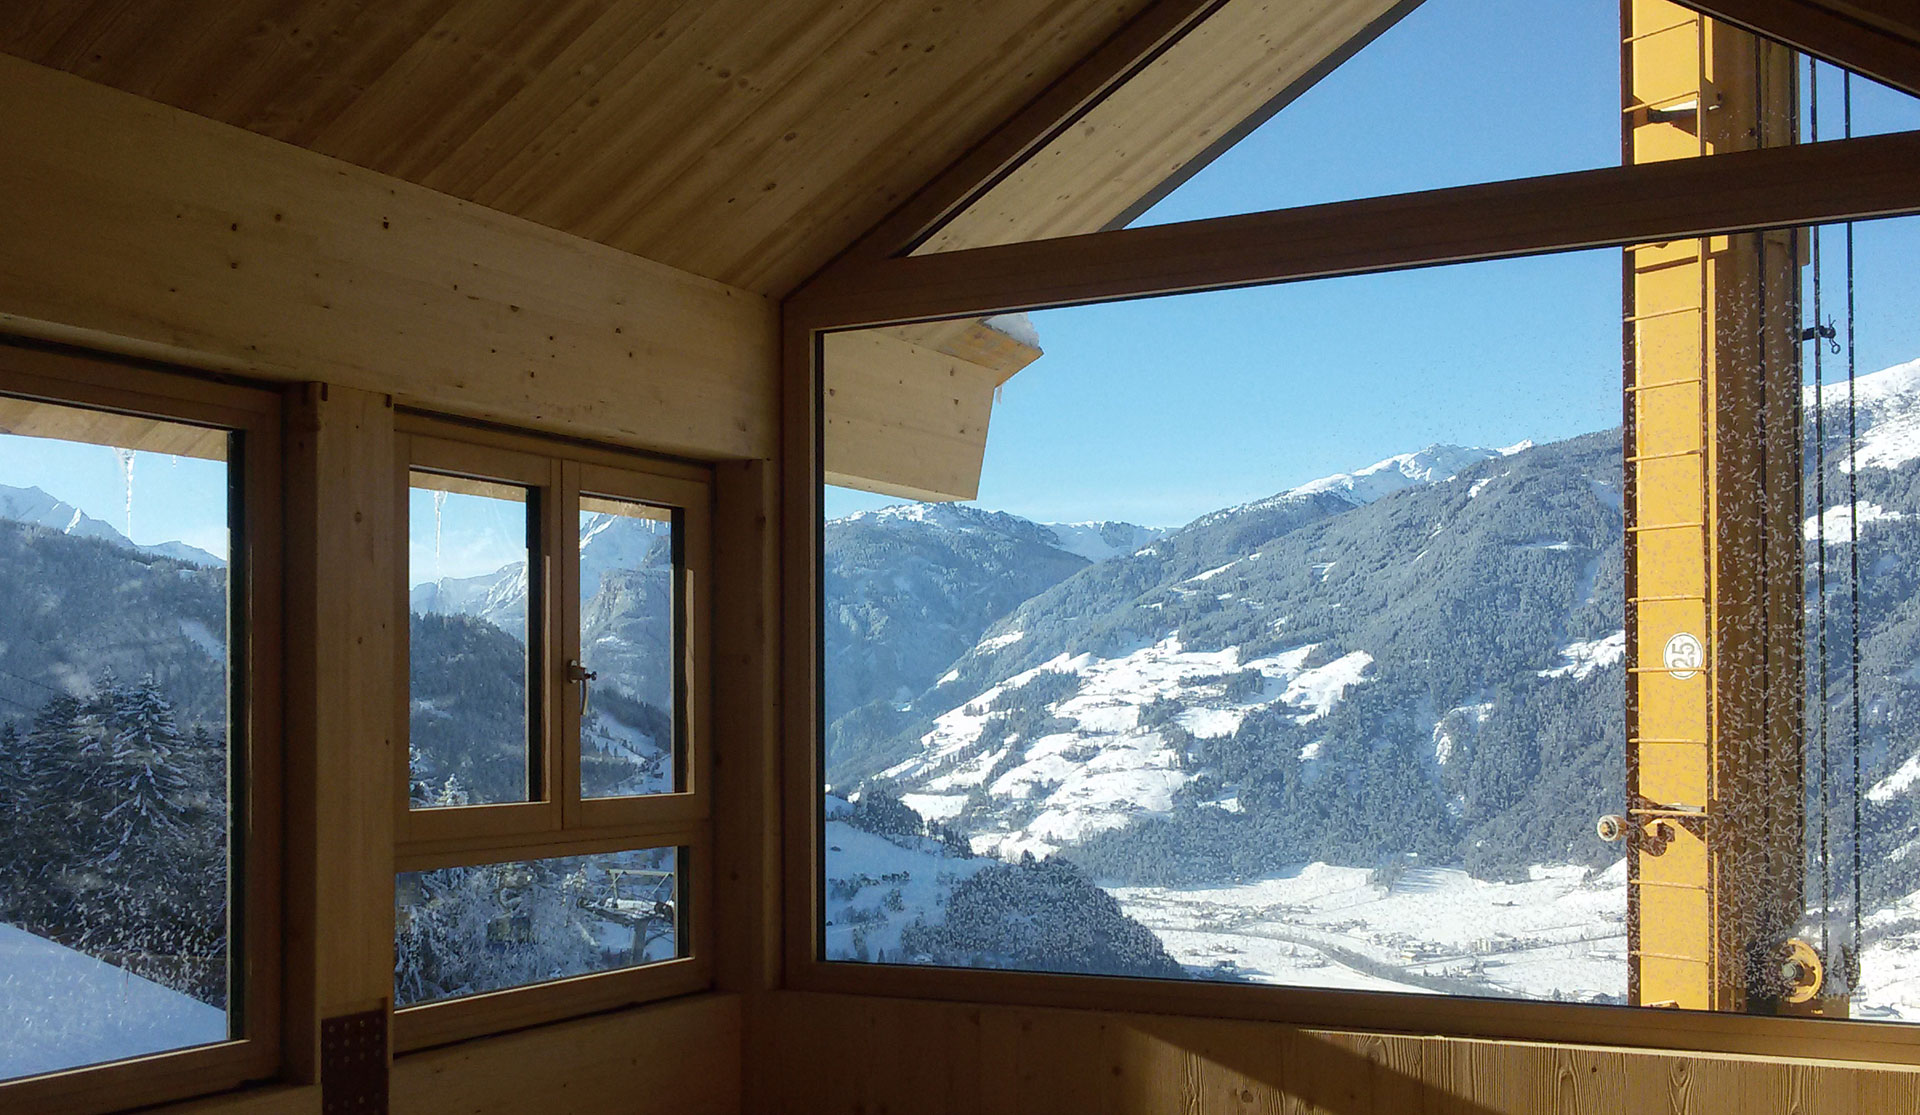 <p>Mountain Chalet - Tyrol (AT) - January 2017</p>